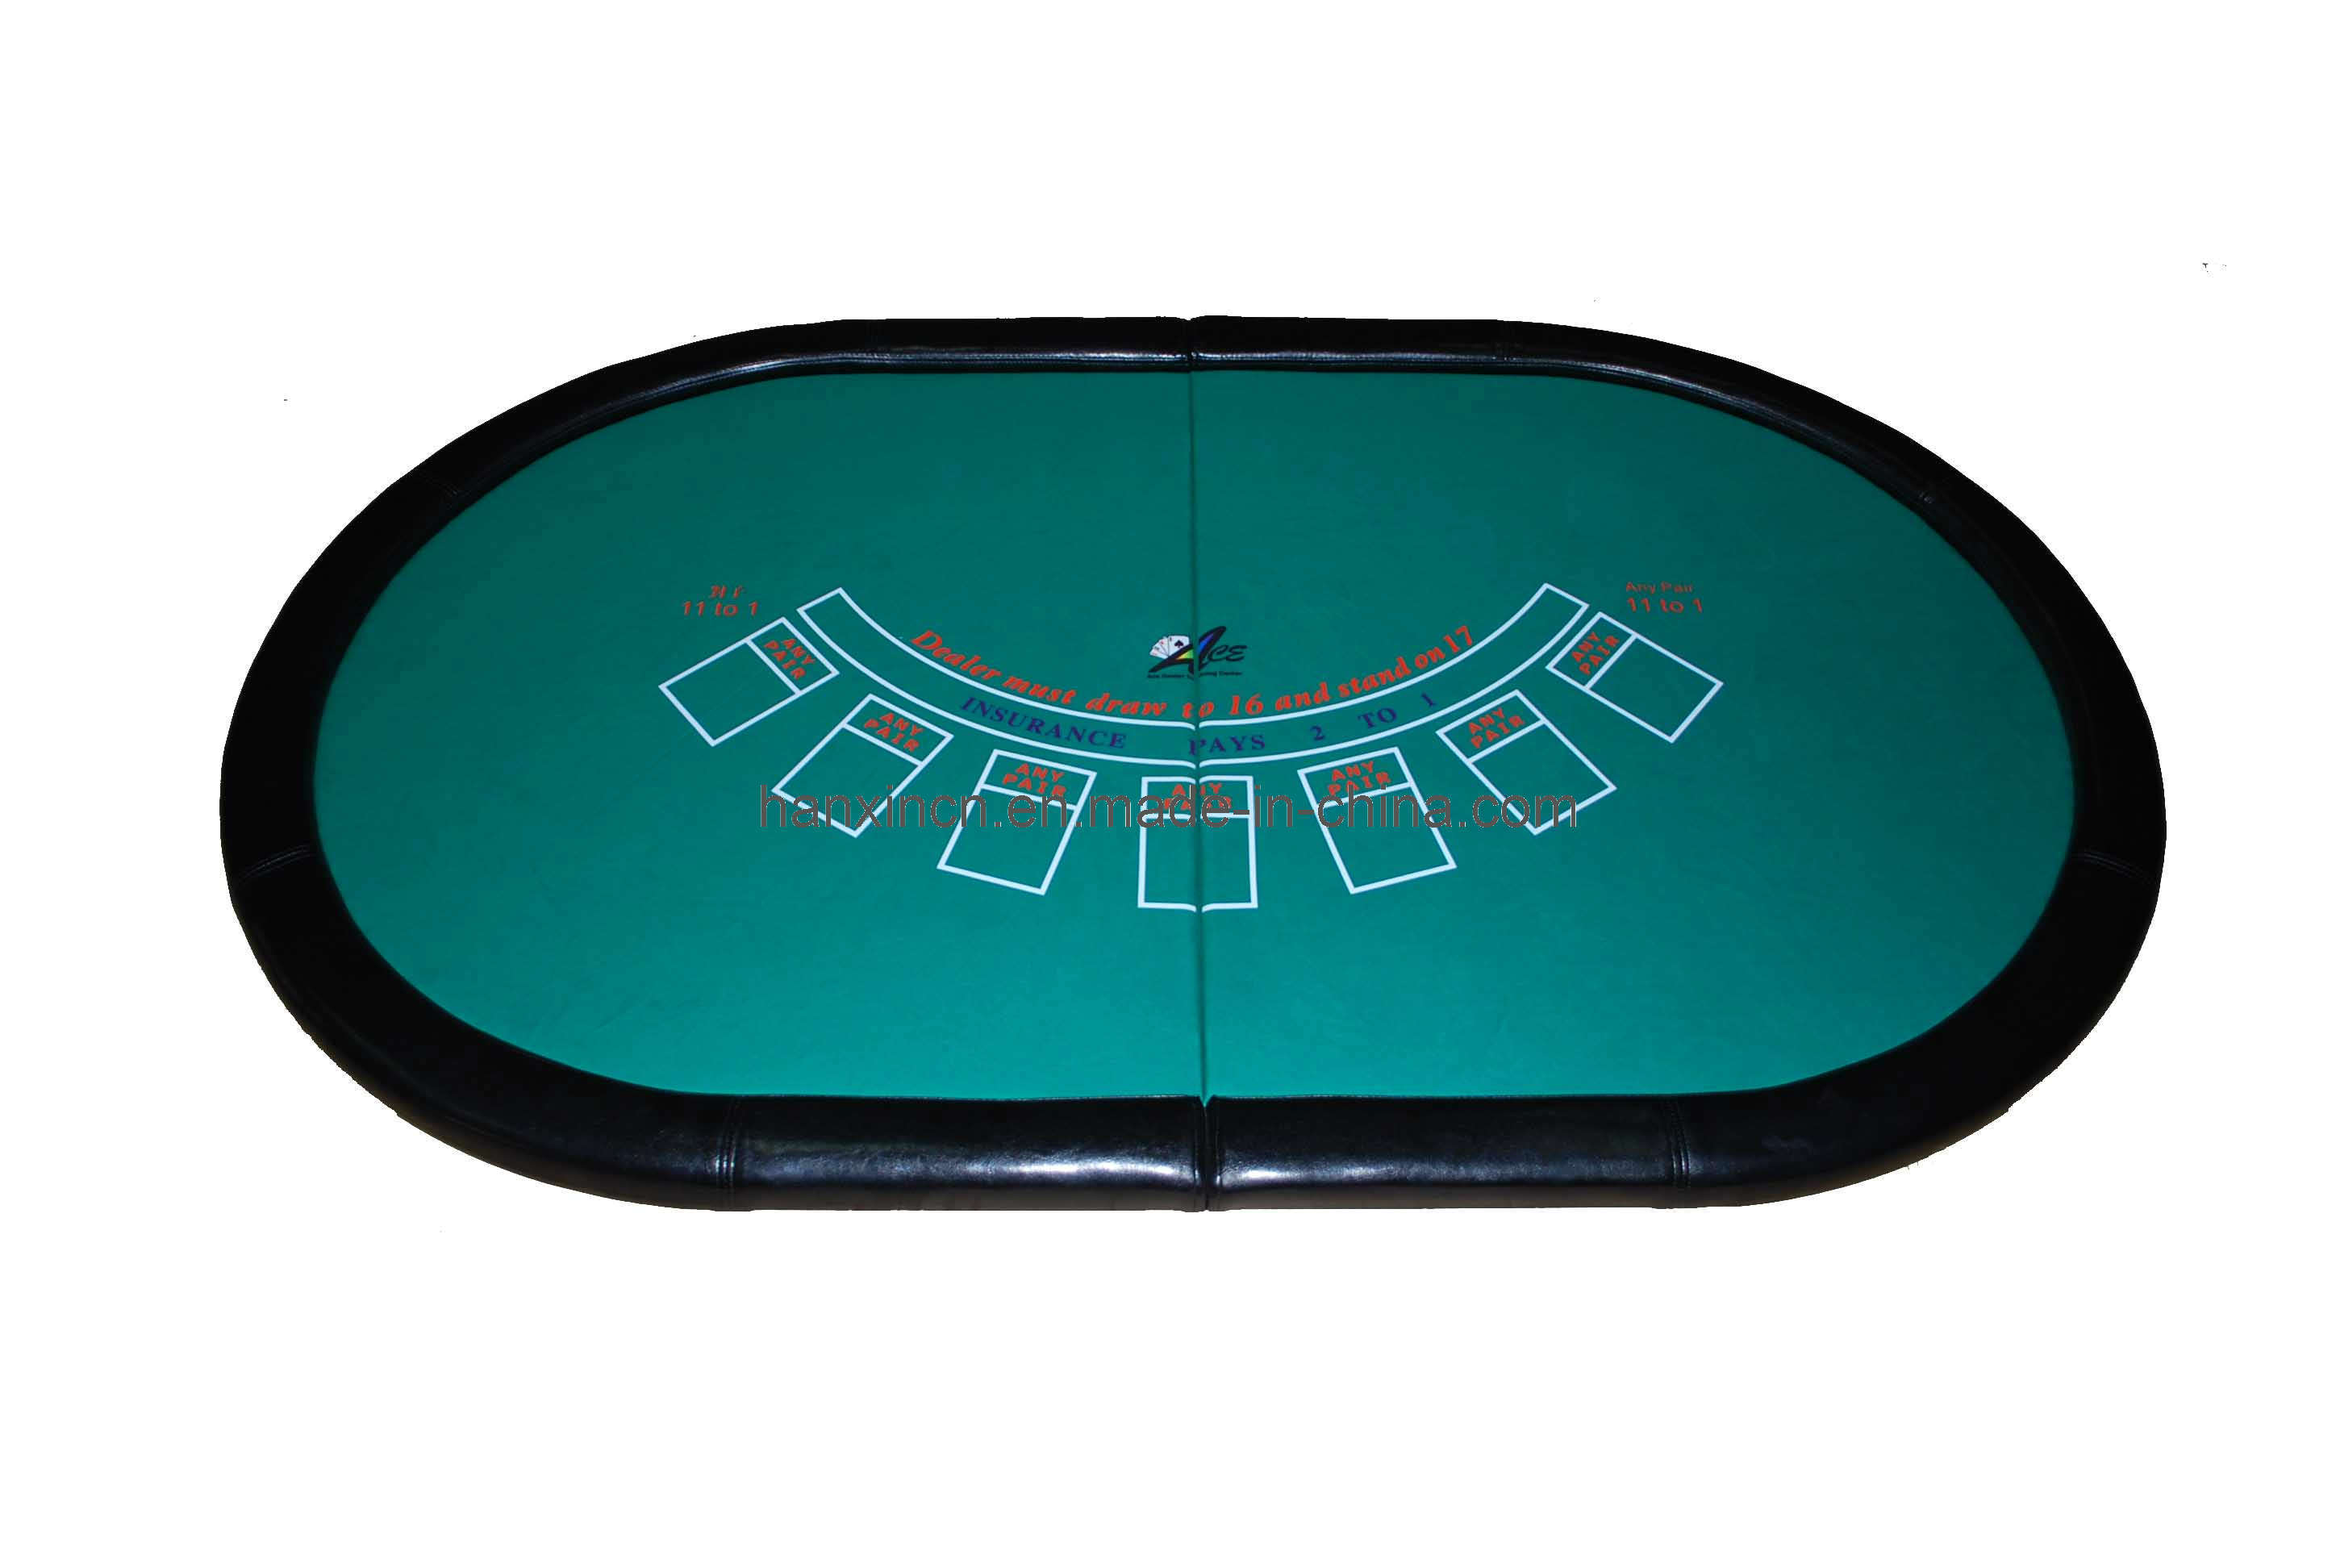 China blackjack table top hxgtt 003 photos pictures for 10 person poker table top